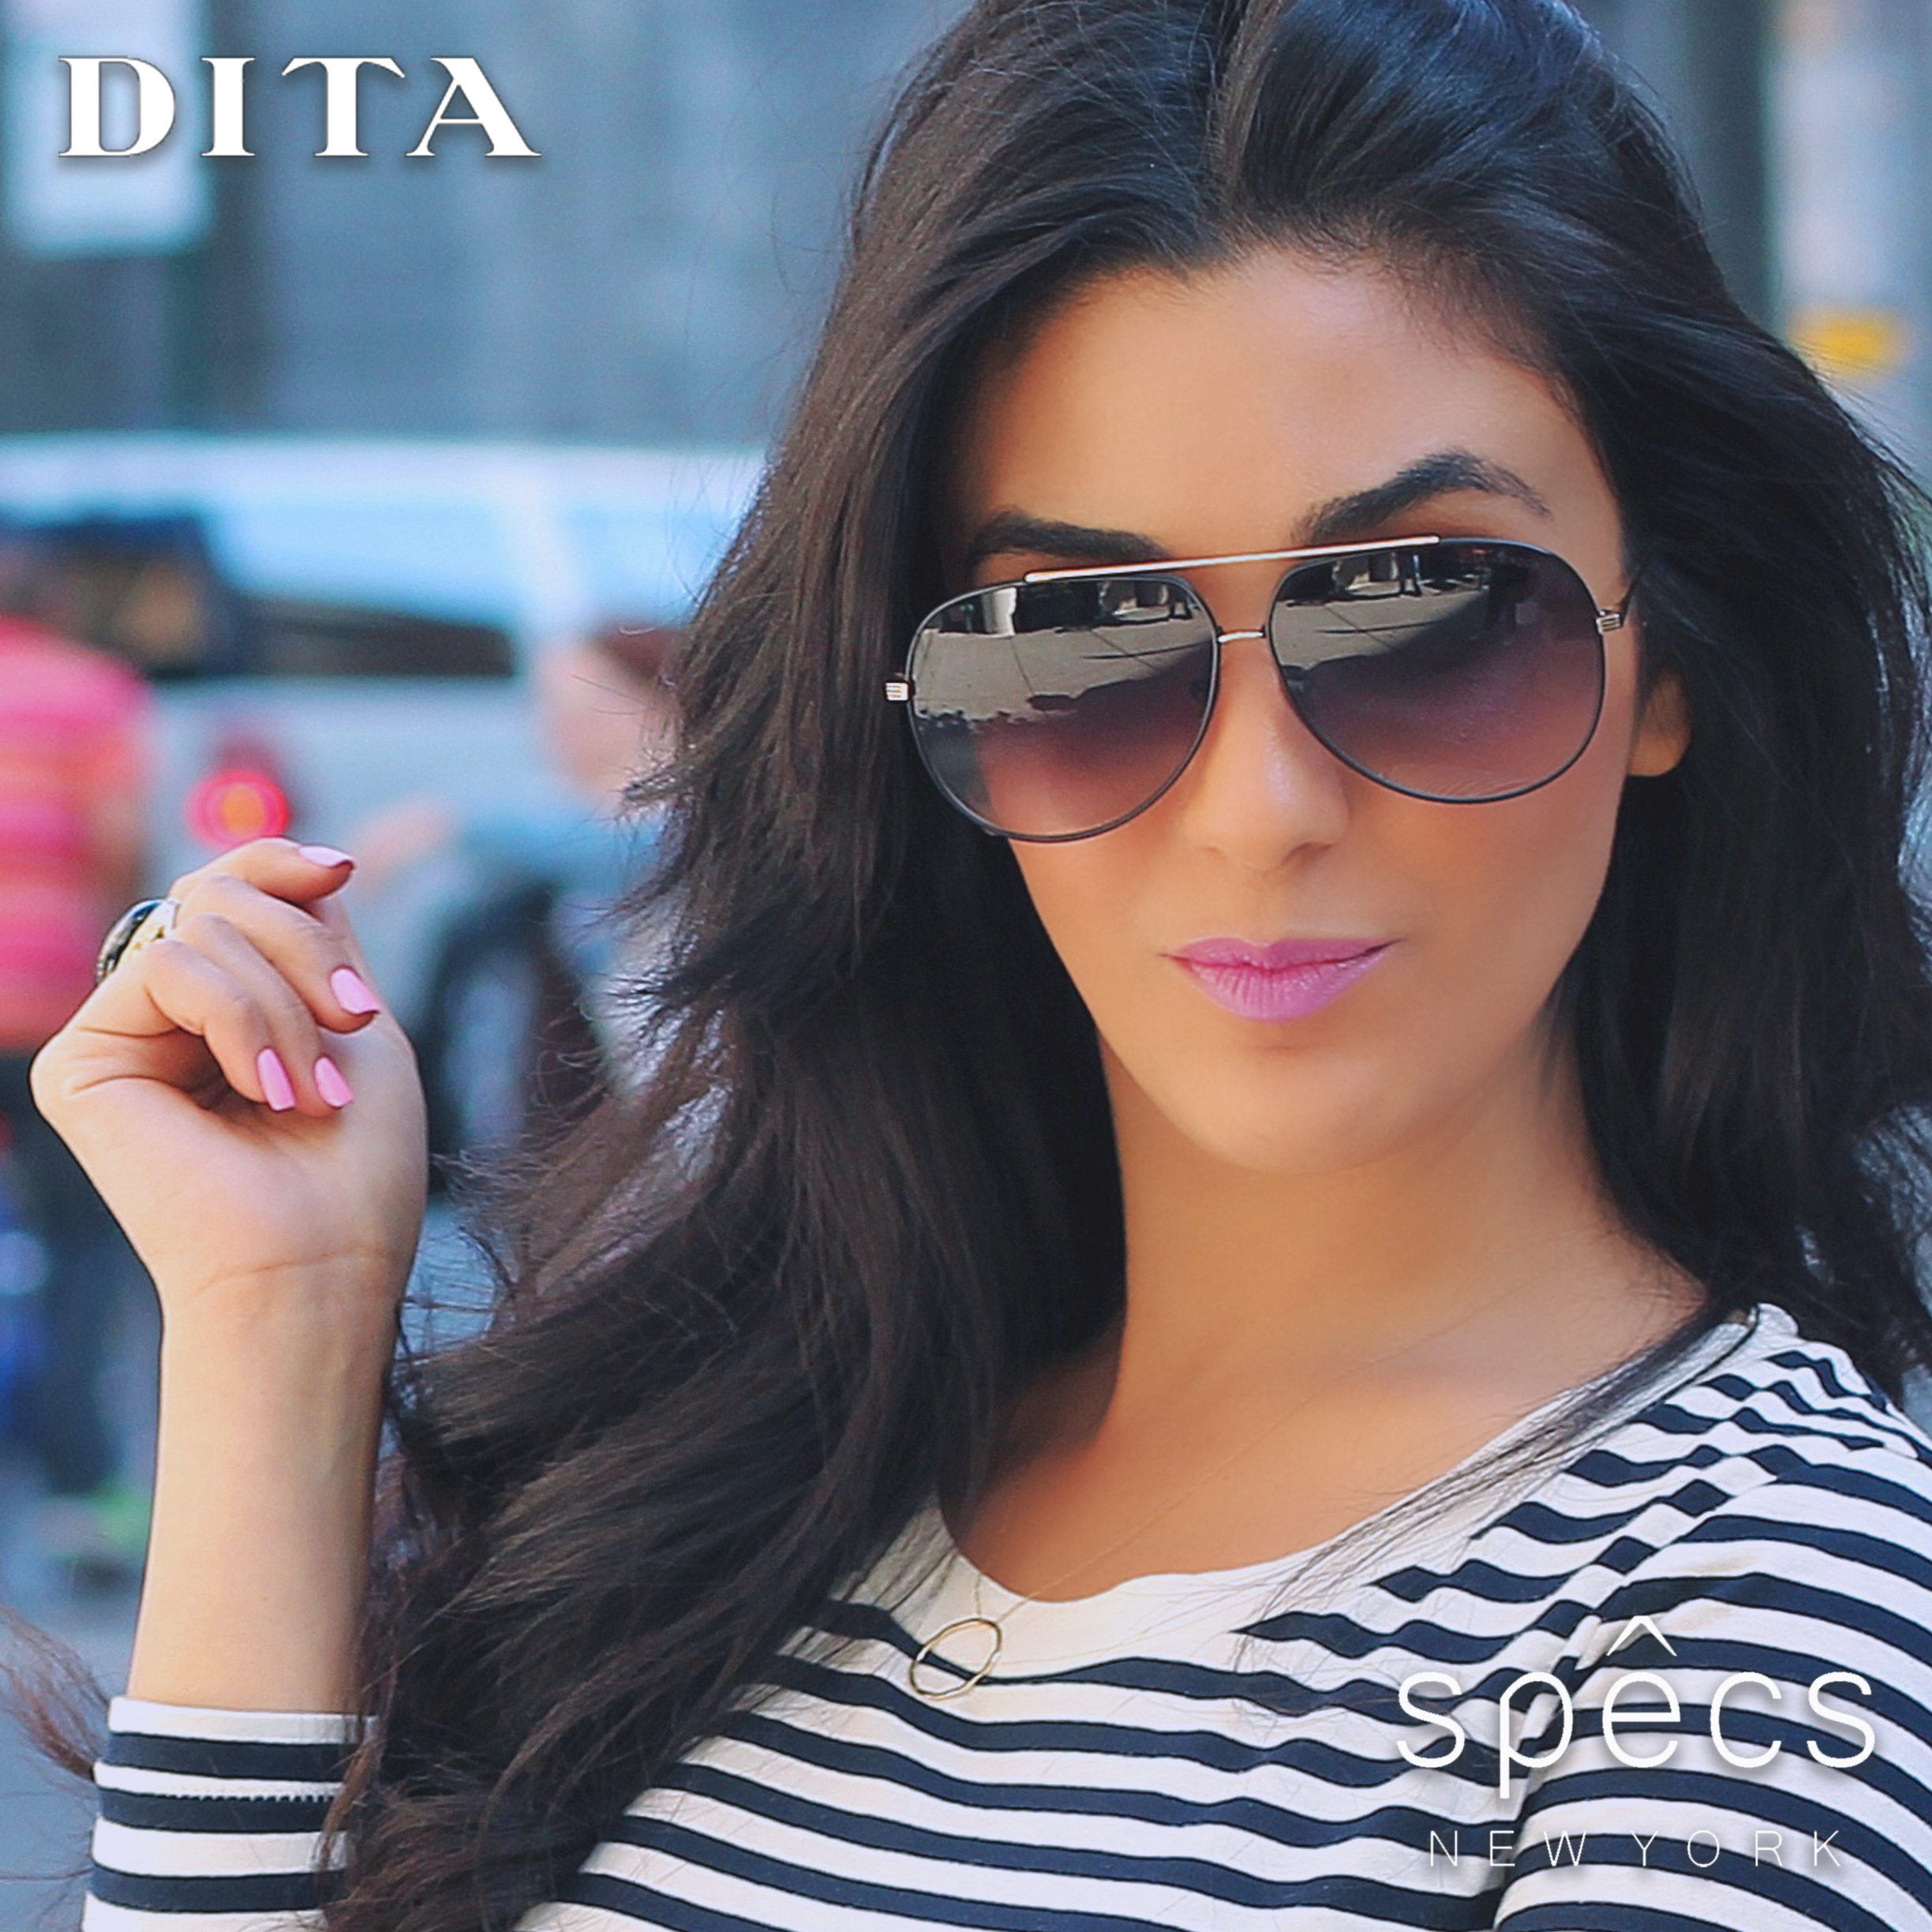 Nili Damari for DITA Eyewear